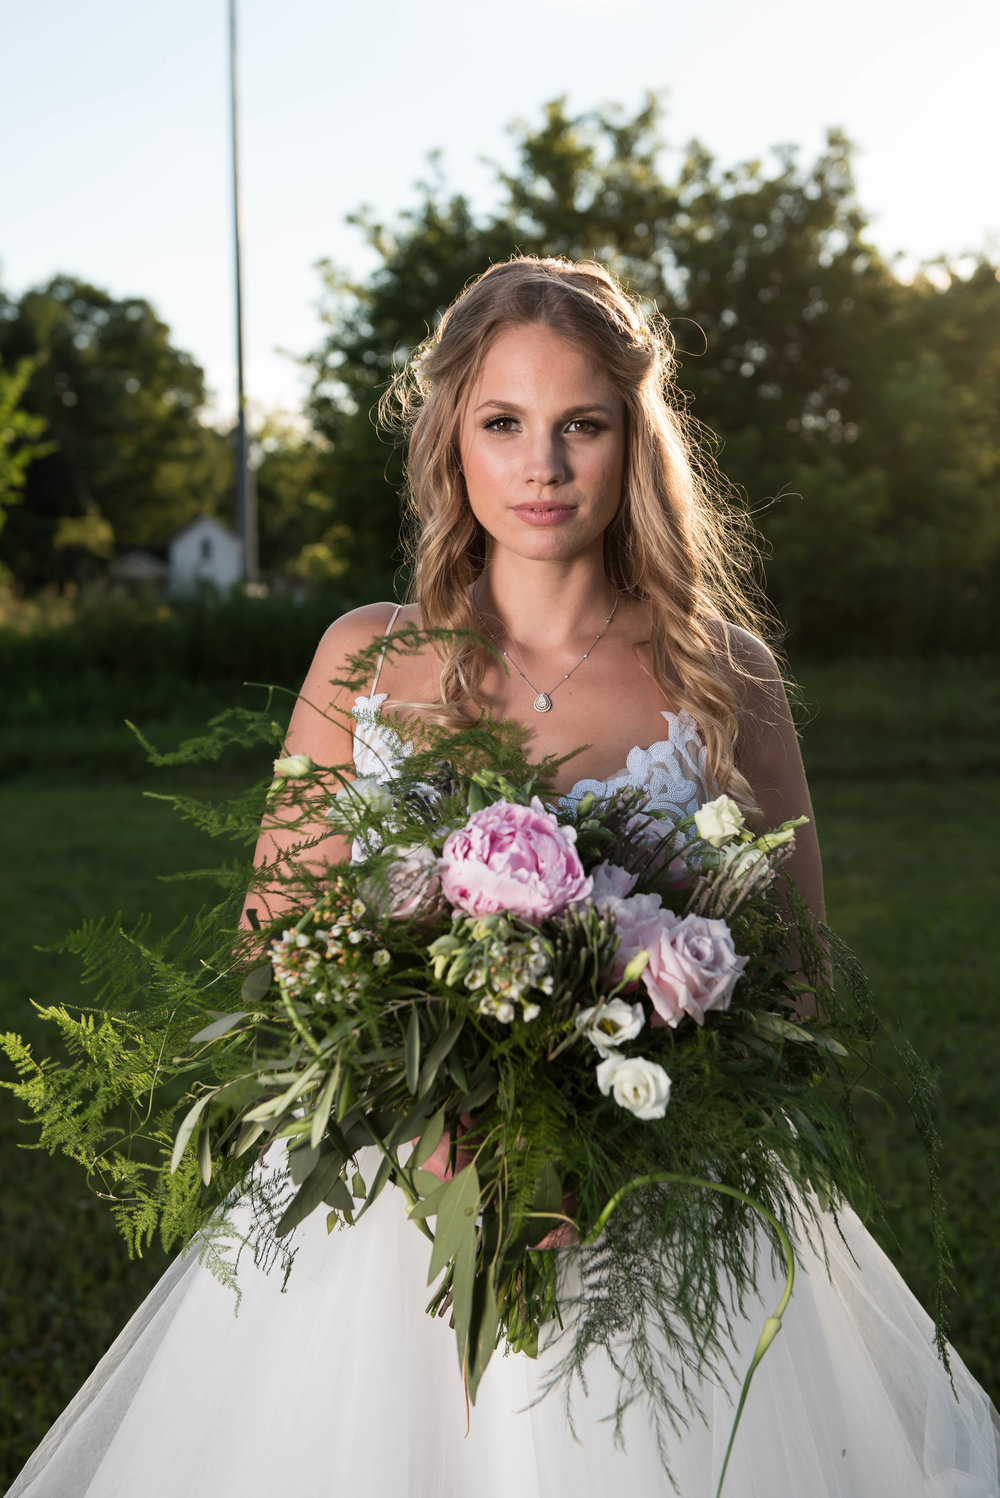 Cleveland Makeup Artist Karin Dodge Airbrush Bridal Weddings